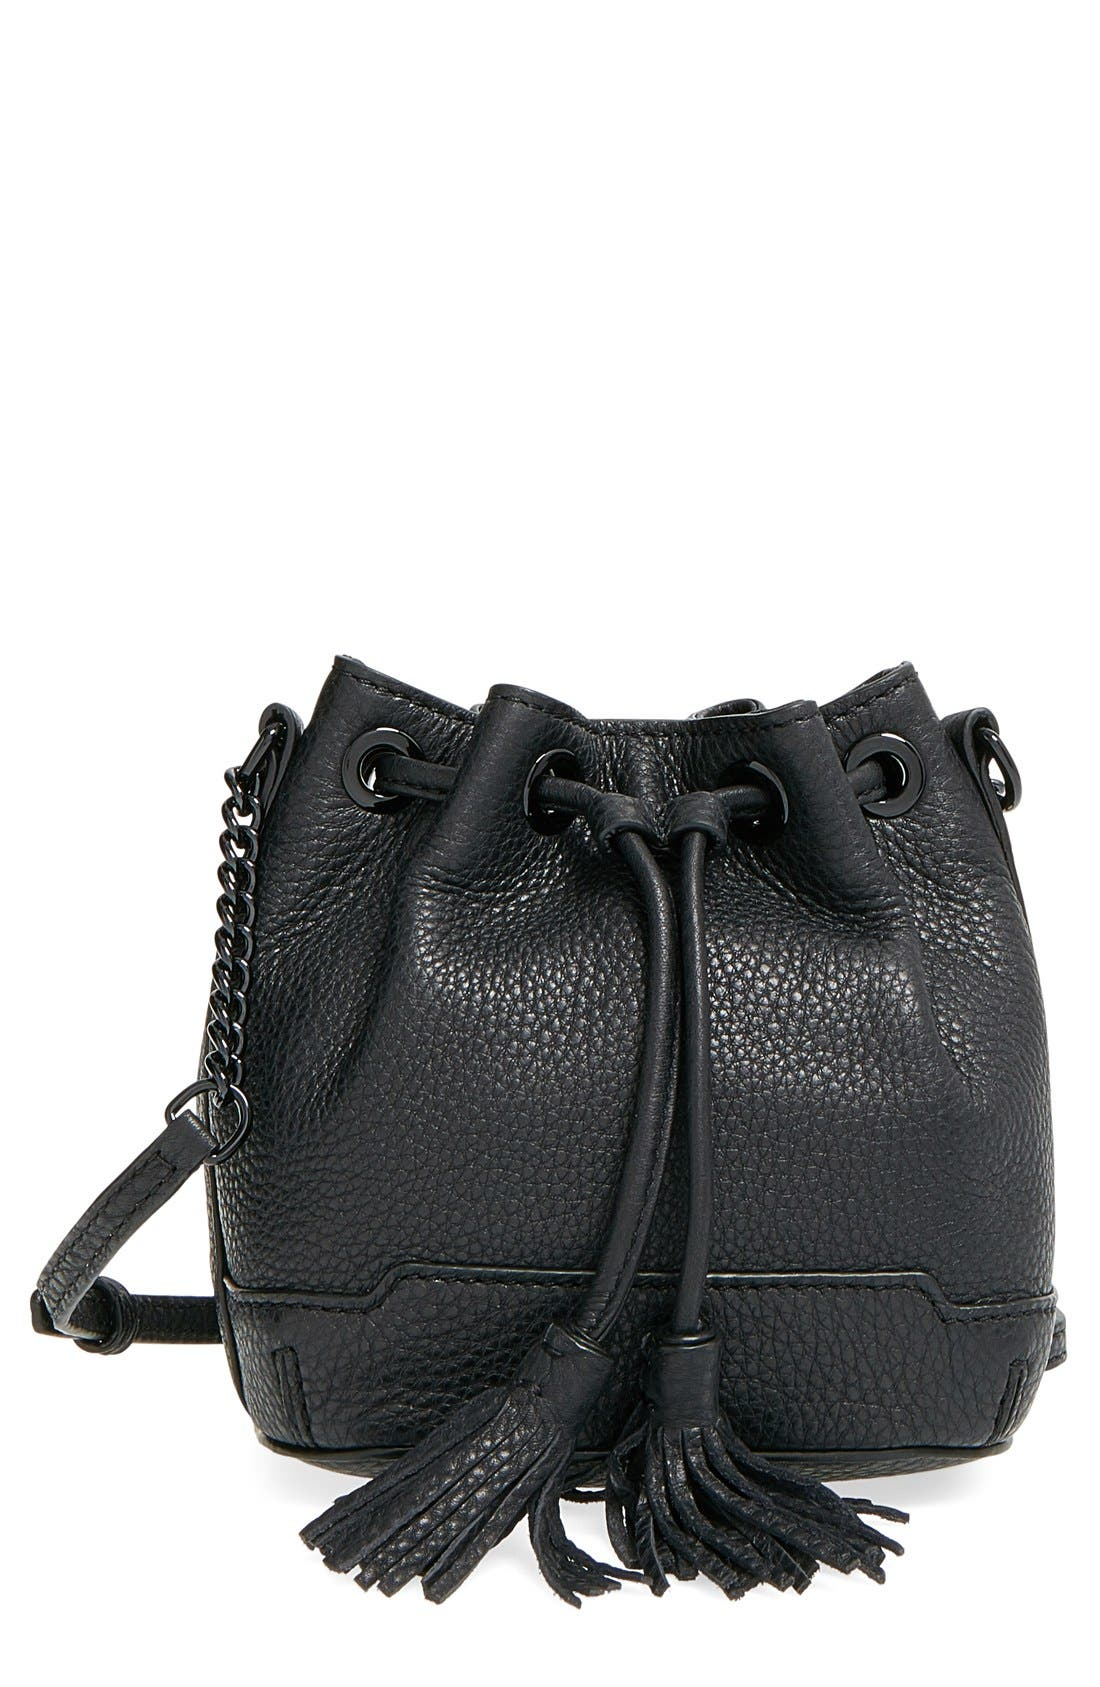 'Micro Lexi' Bucket Bag,                         Main,                         color, 001